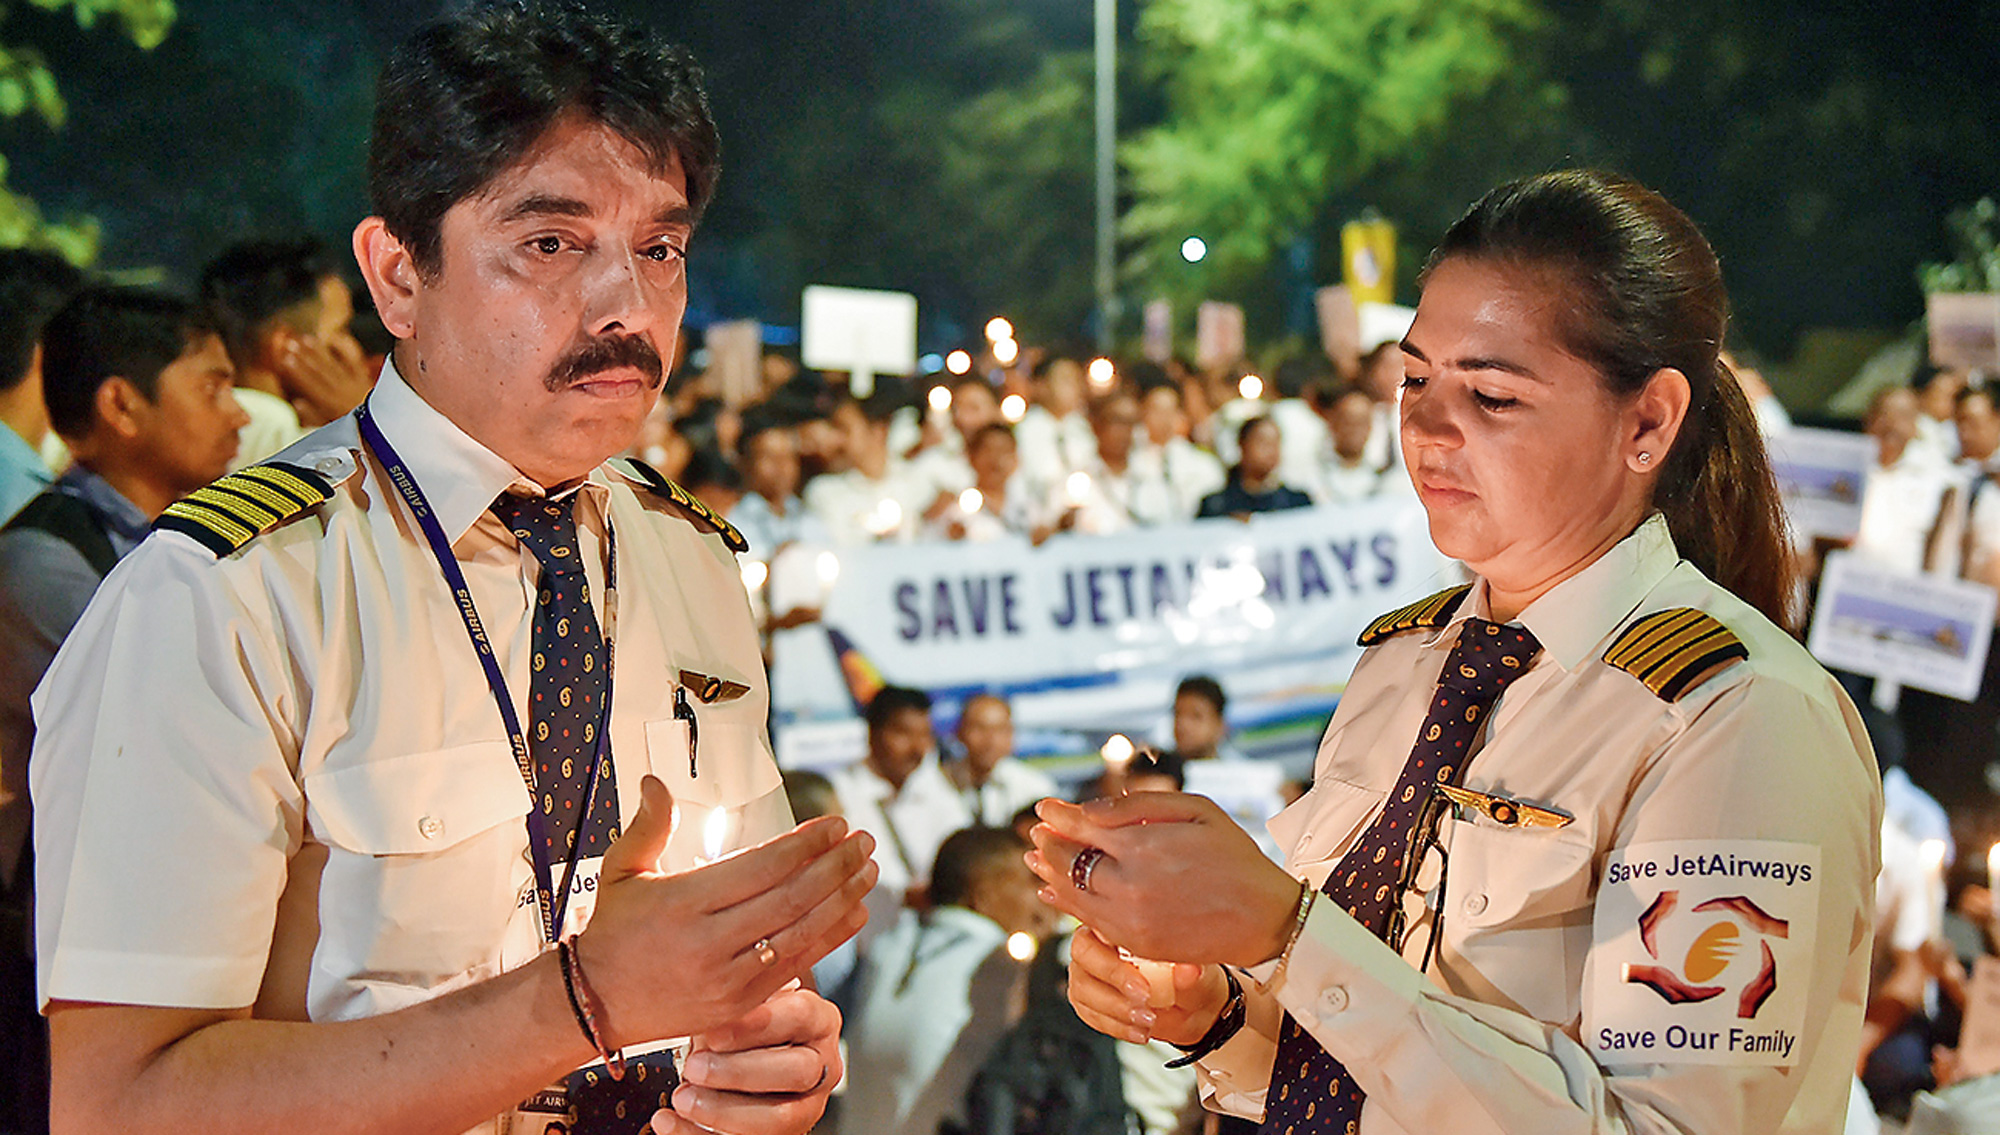 Jet Airways employees in New Delhi on Saturday hold a candle-light march to make an appeal to save the cash-starved airline.